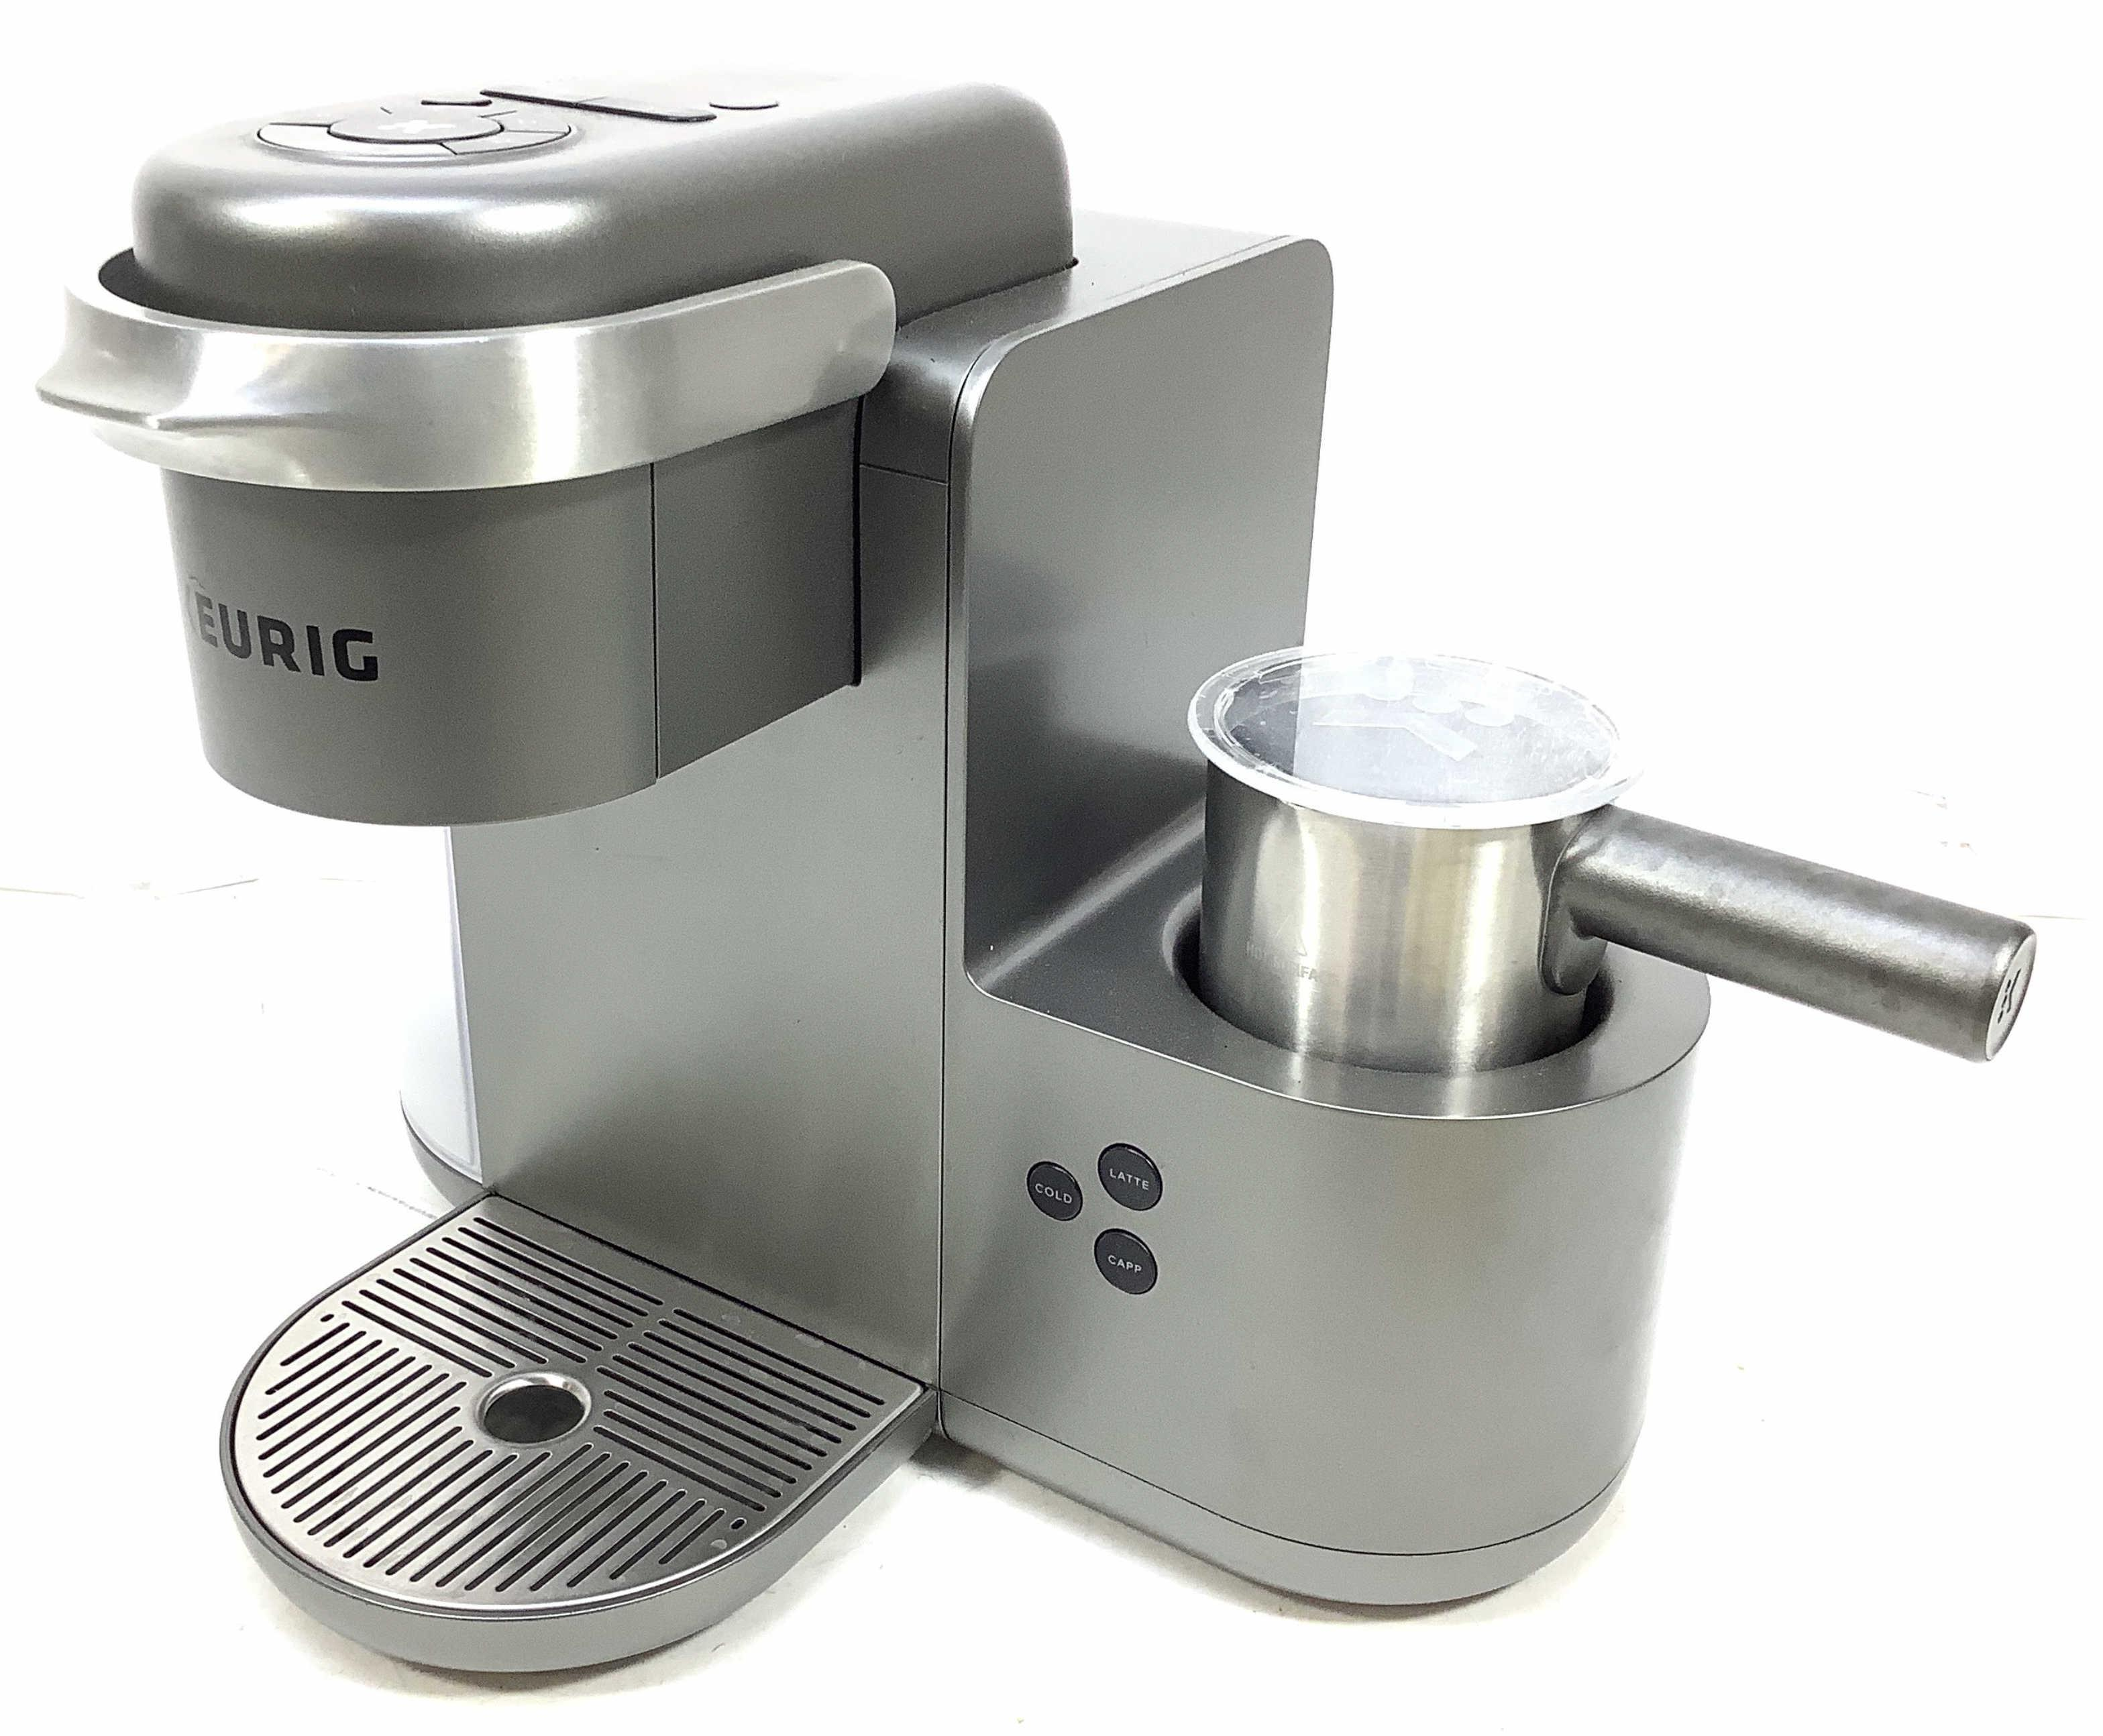 Kurig Latte & Cappuccino Machine